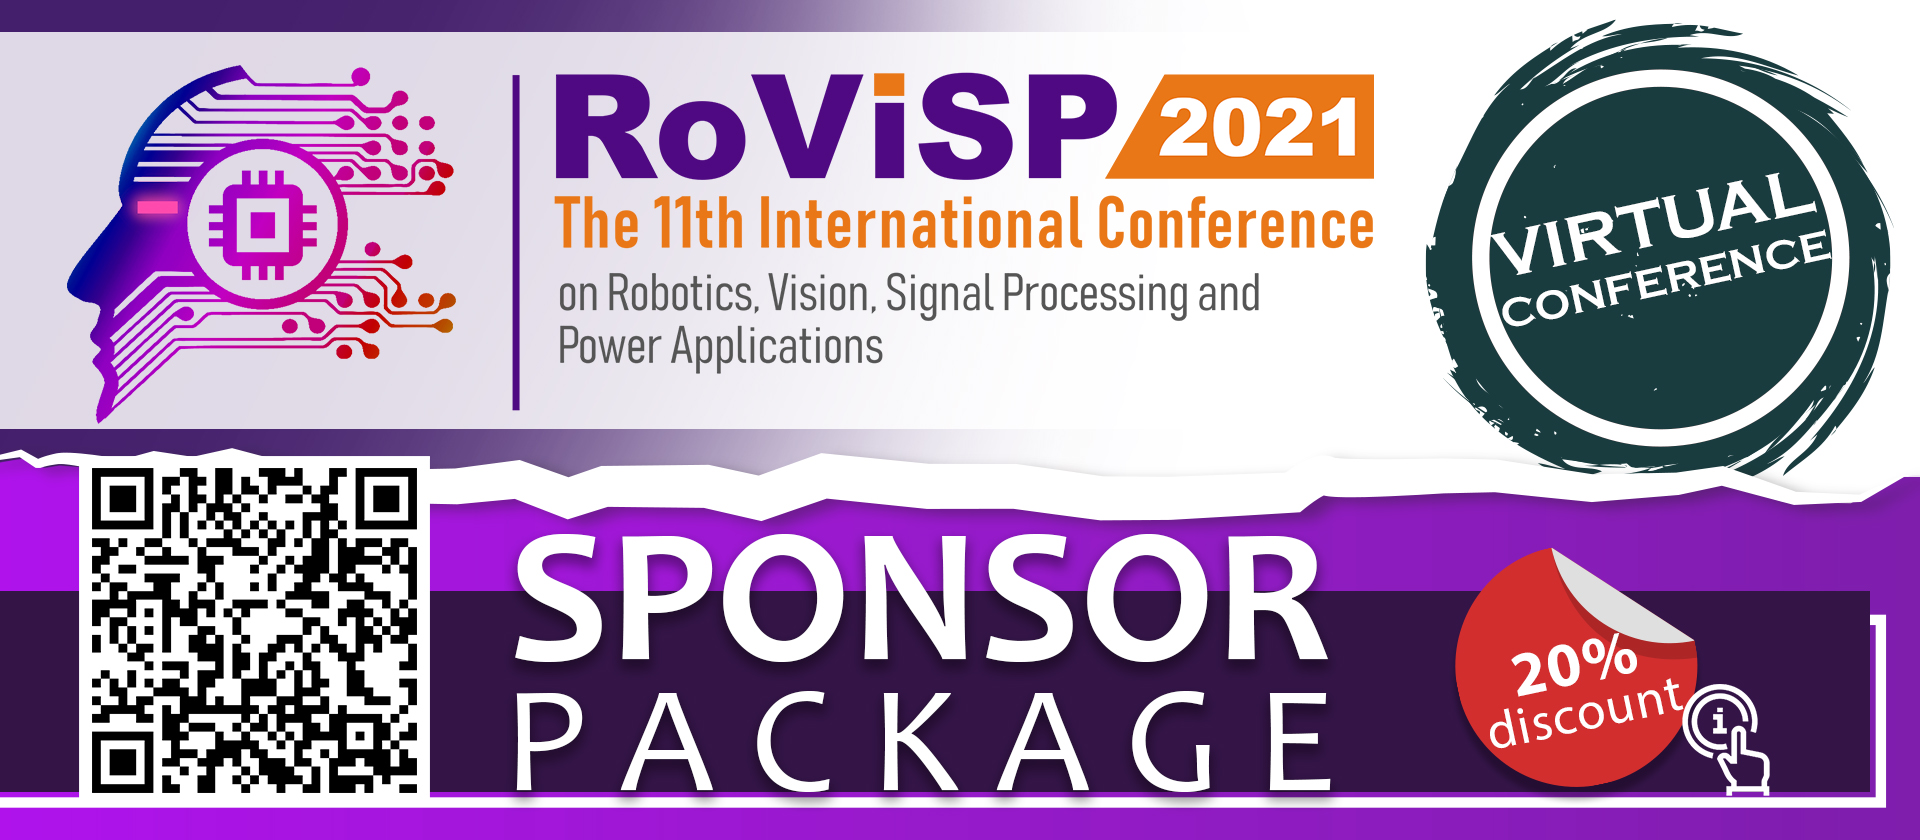 20201124 Image Slider RoViSP 2021 Sponsor Package